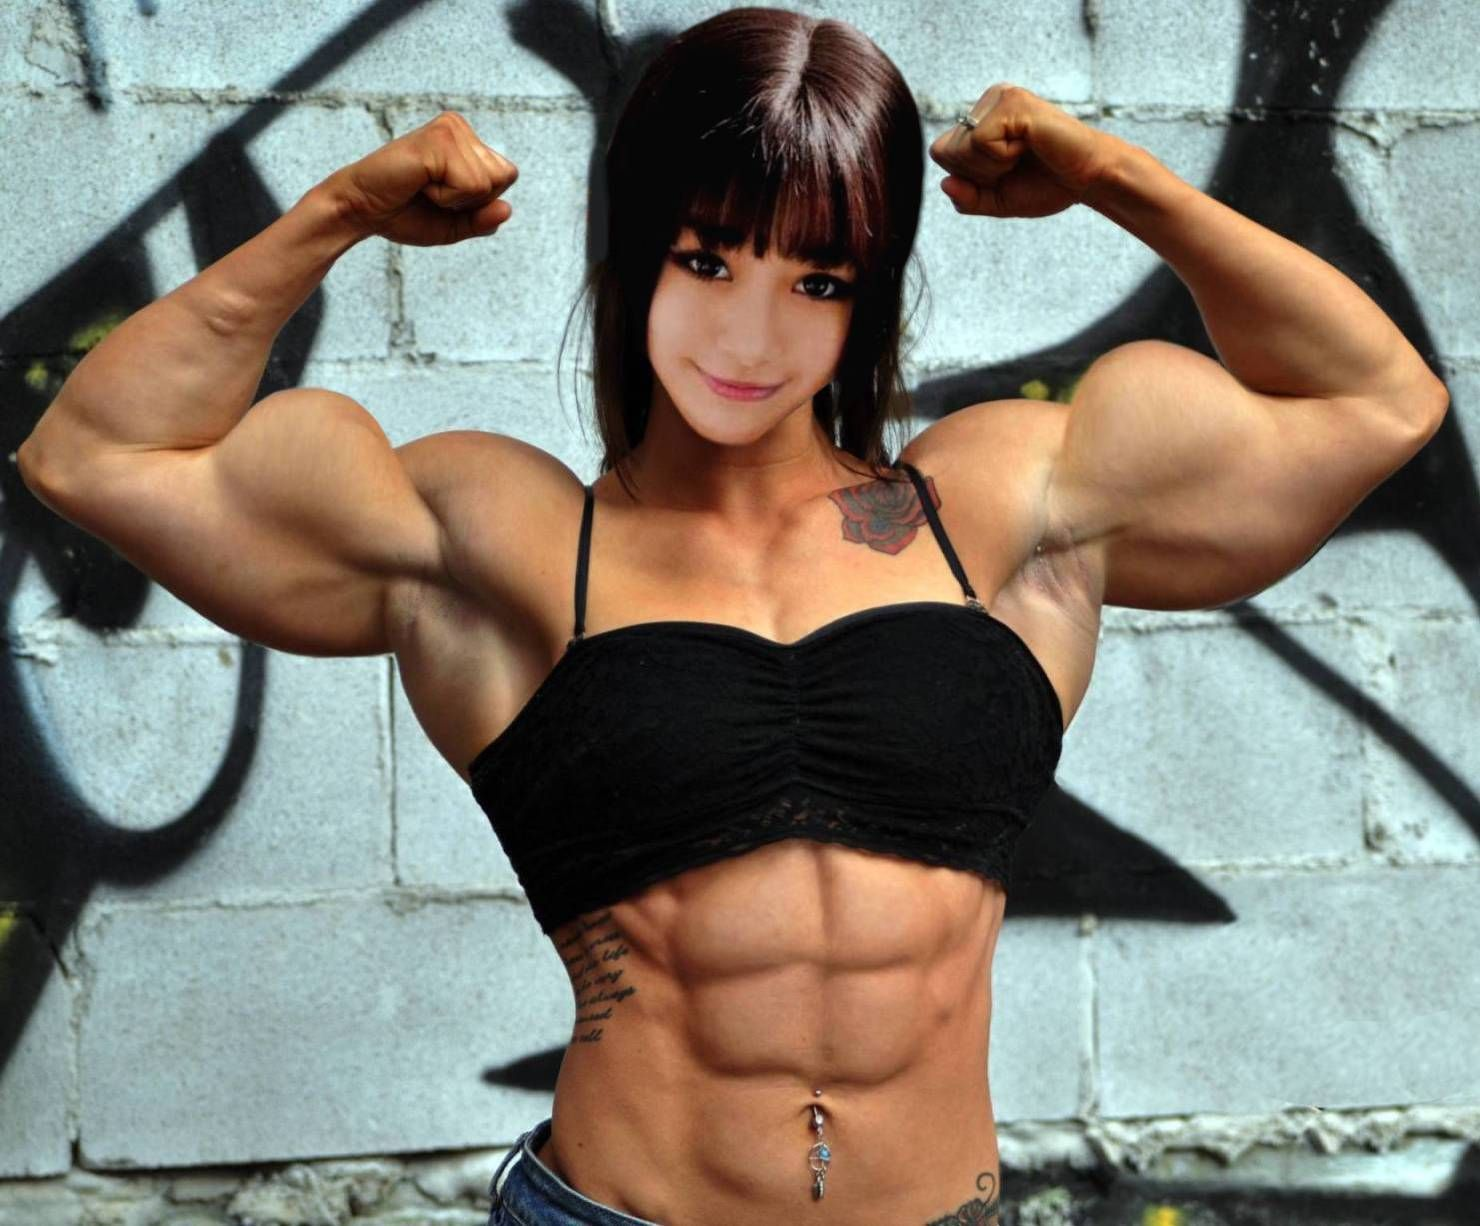 Asian female muscle porn star images